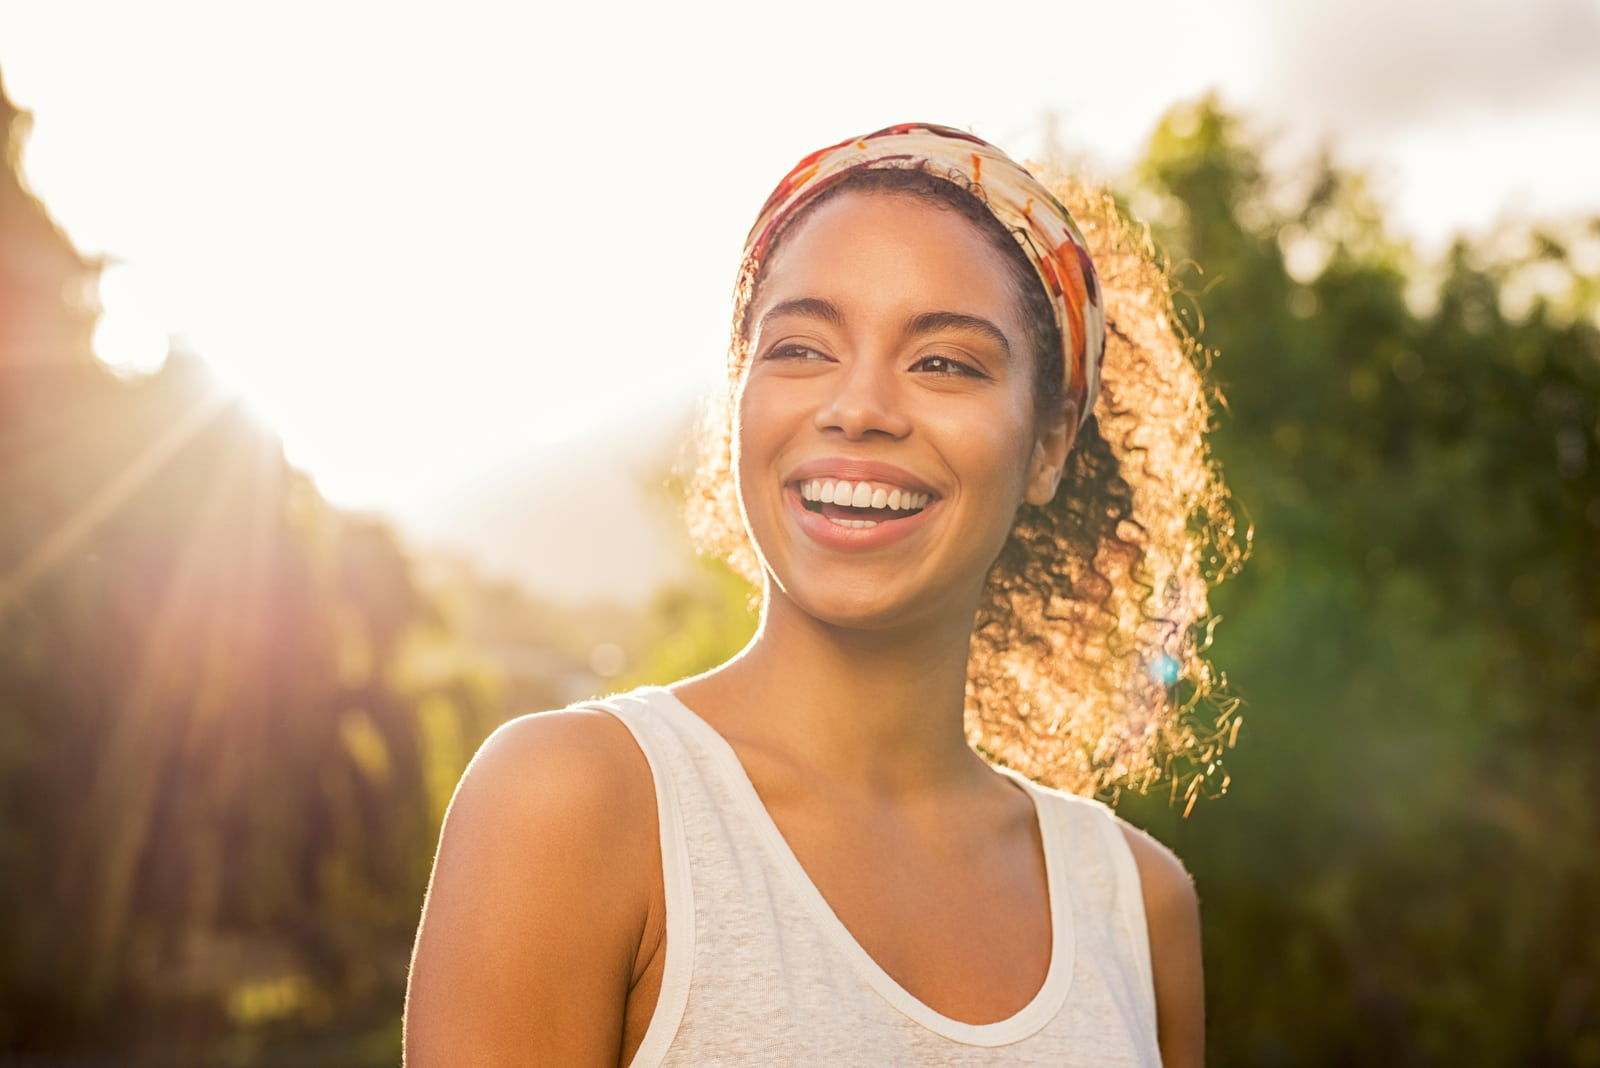 woman smiling and looking away at park